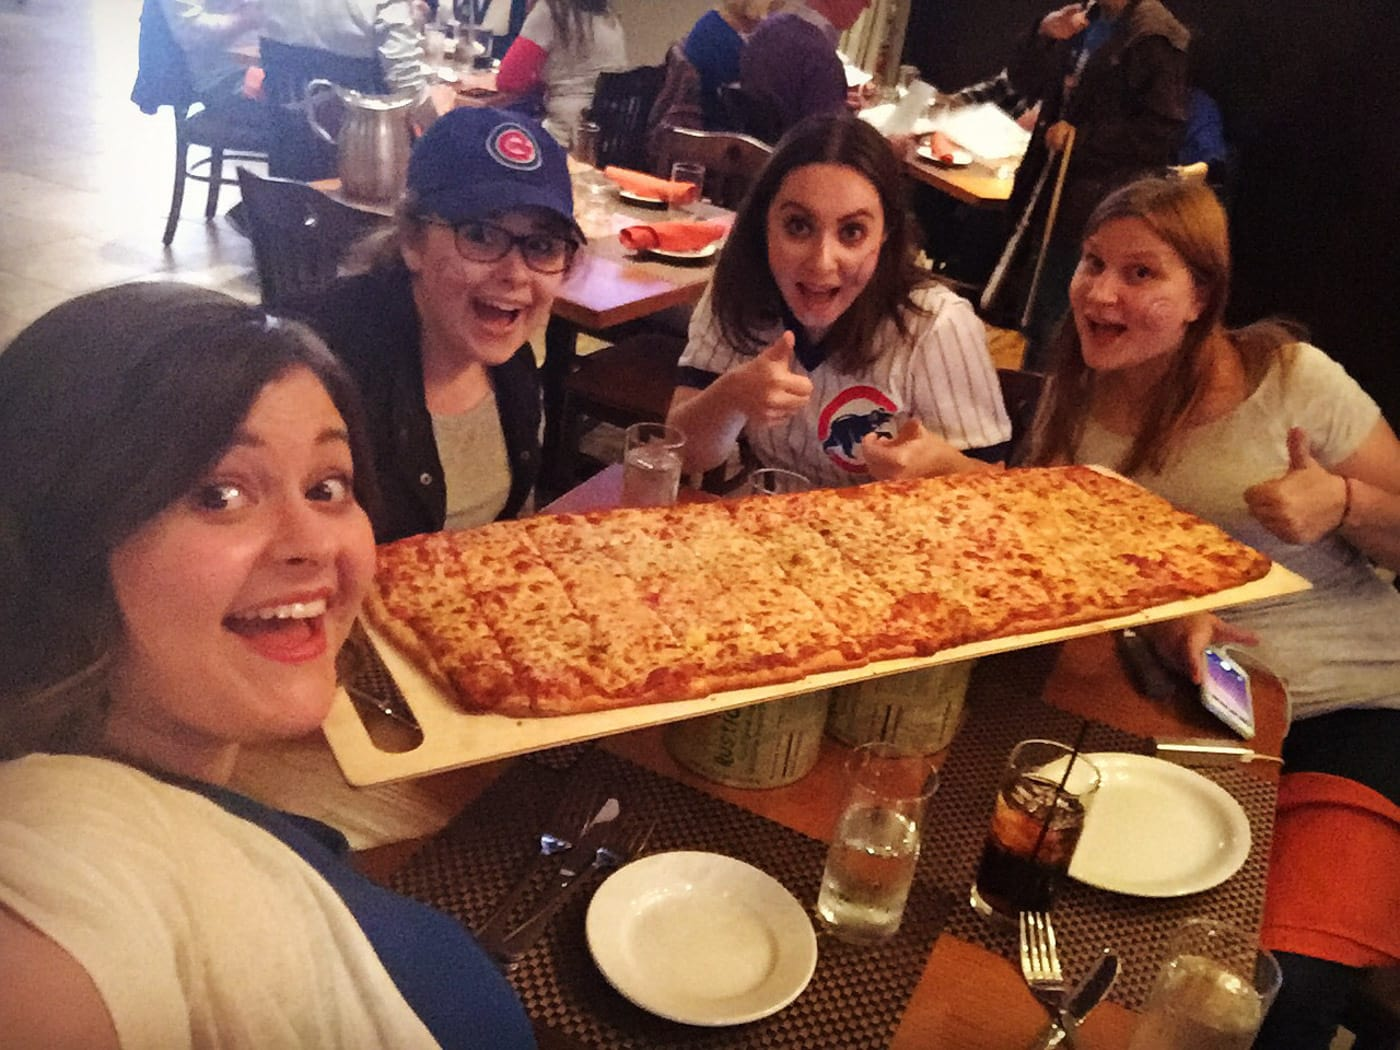 Giant pizza after the Cubs parade.